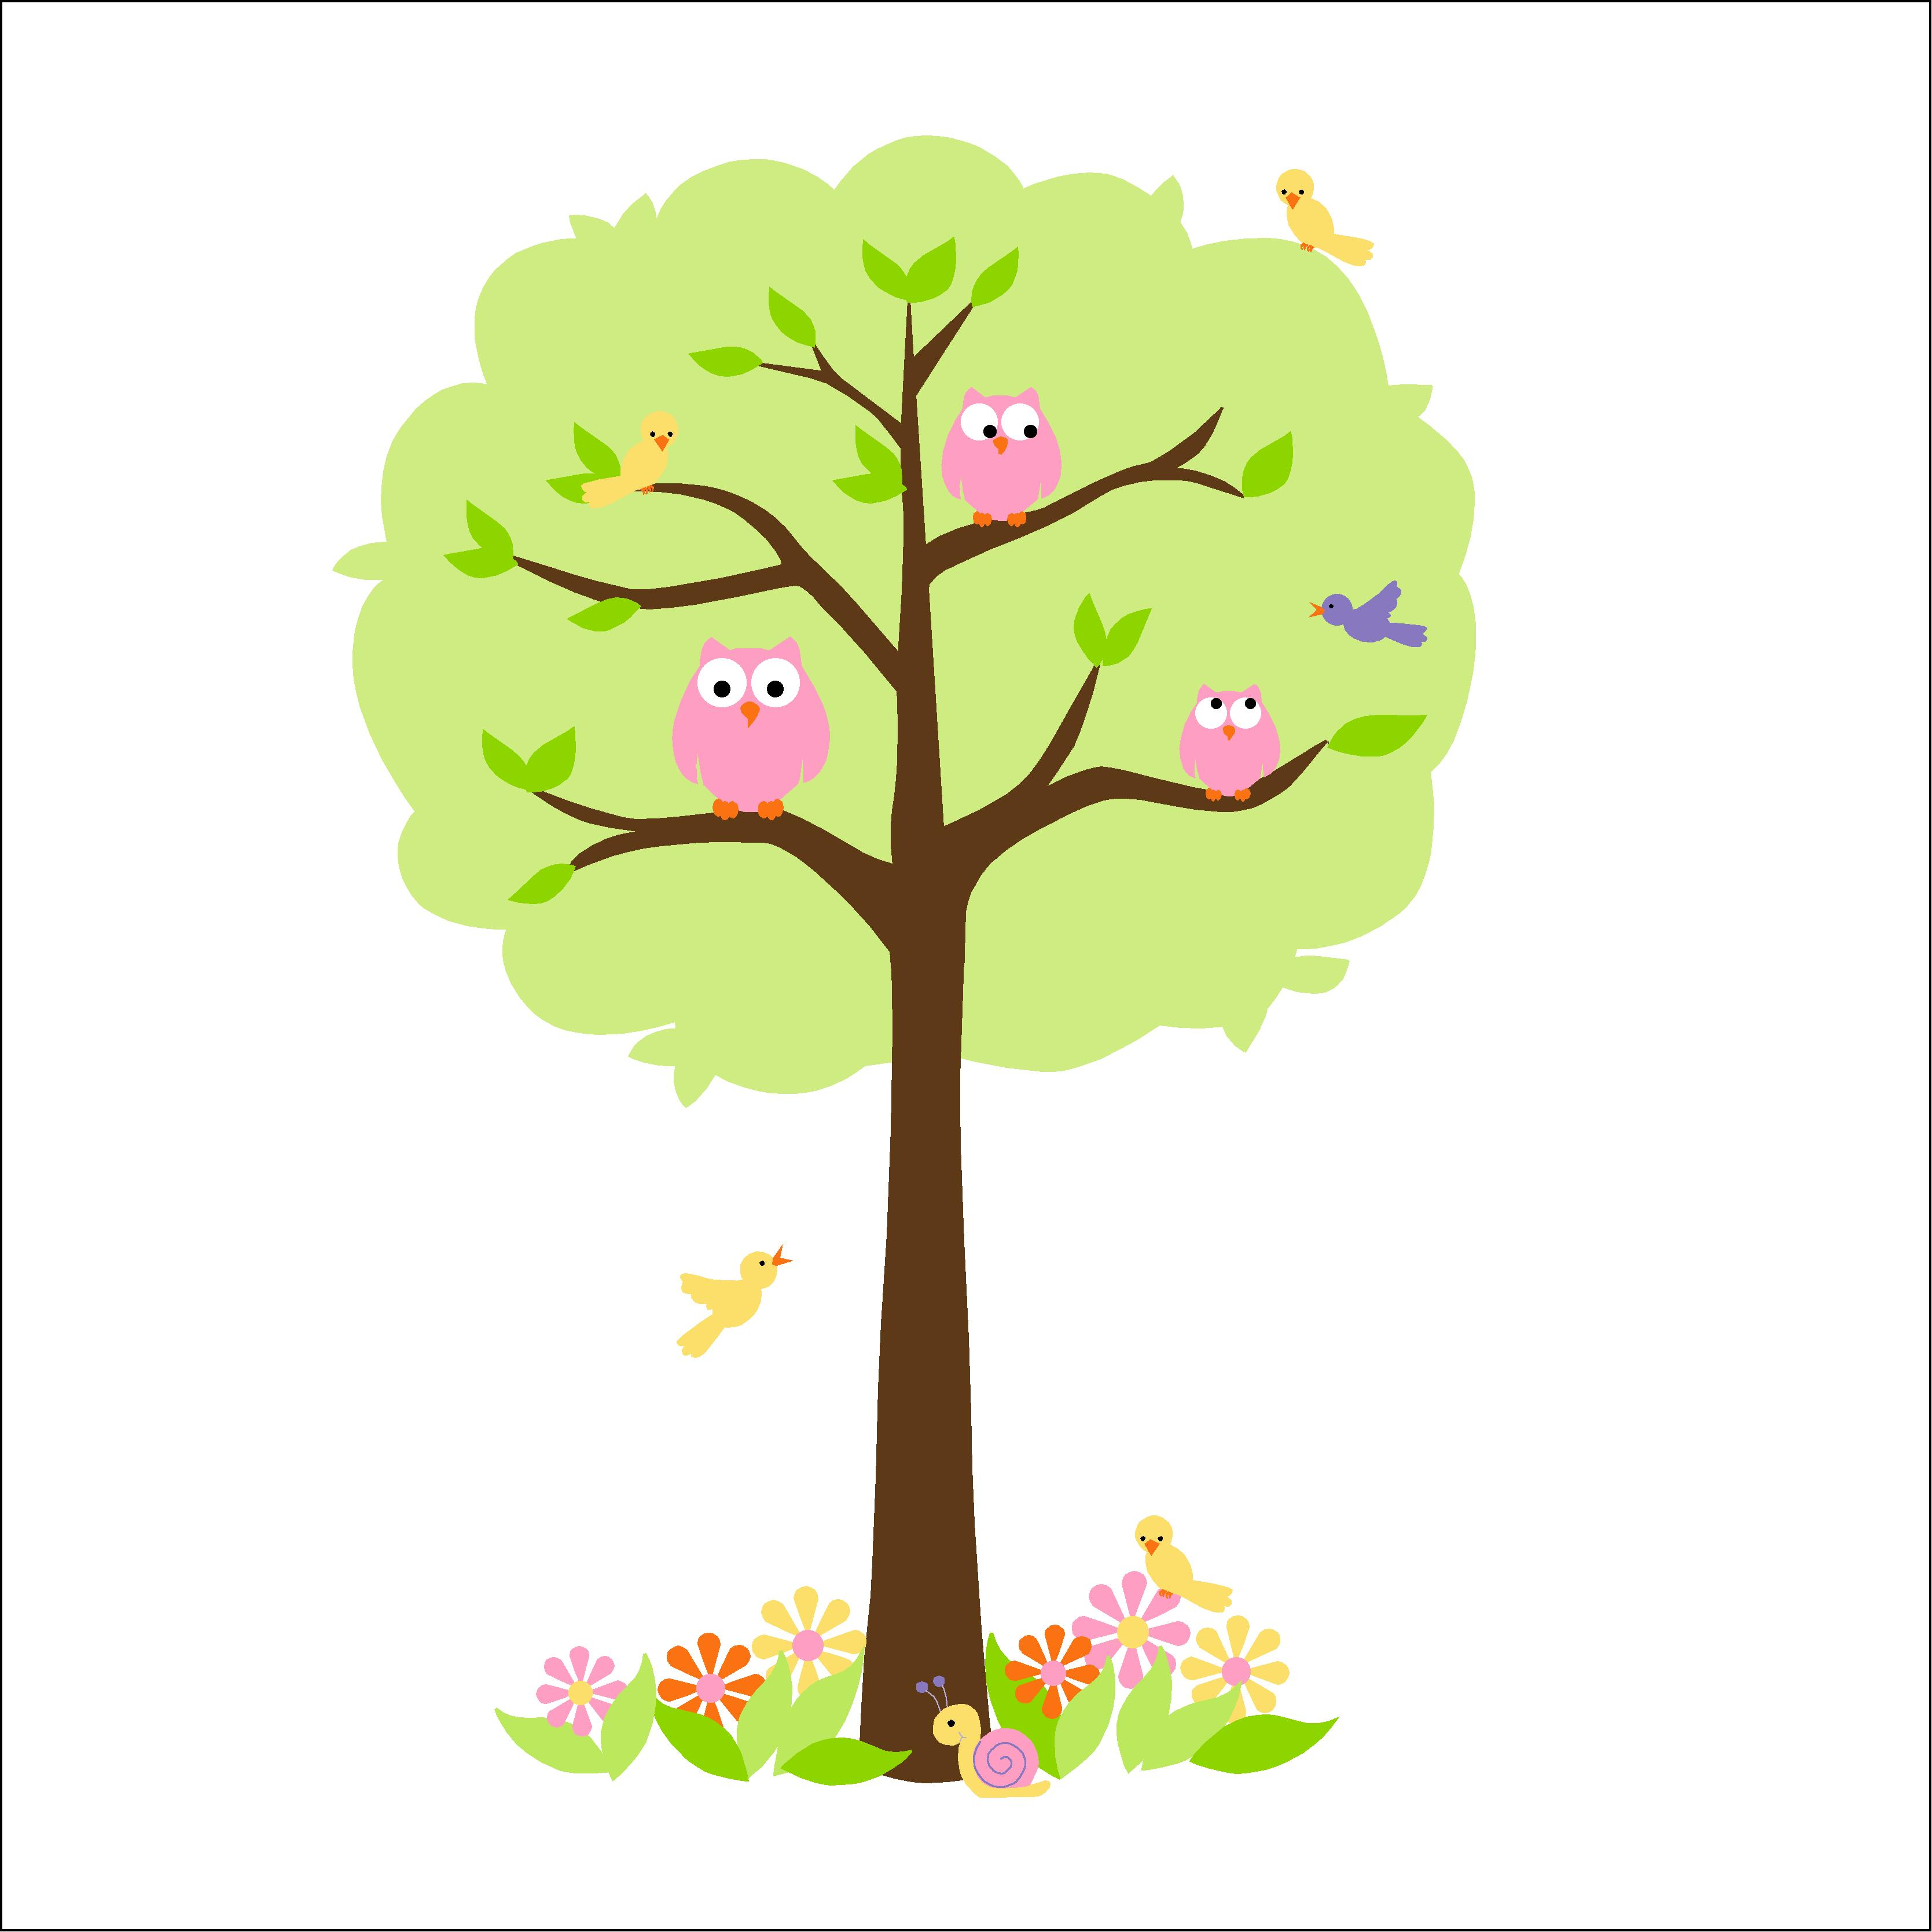 Owl Tree Png - Owls On A Tree Png & Free Owls On A Tree.png Transparent Images ...